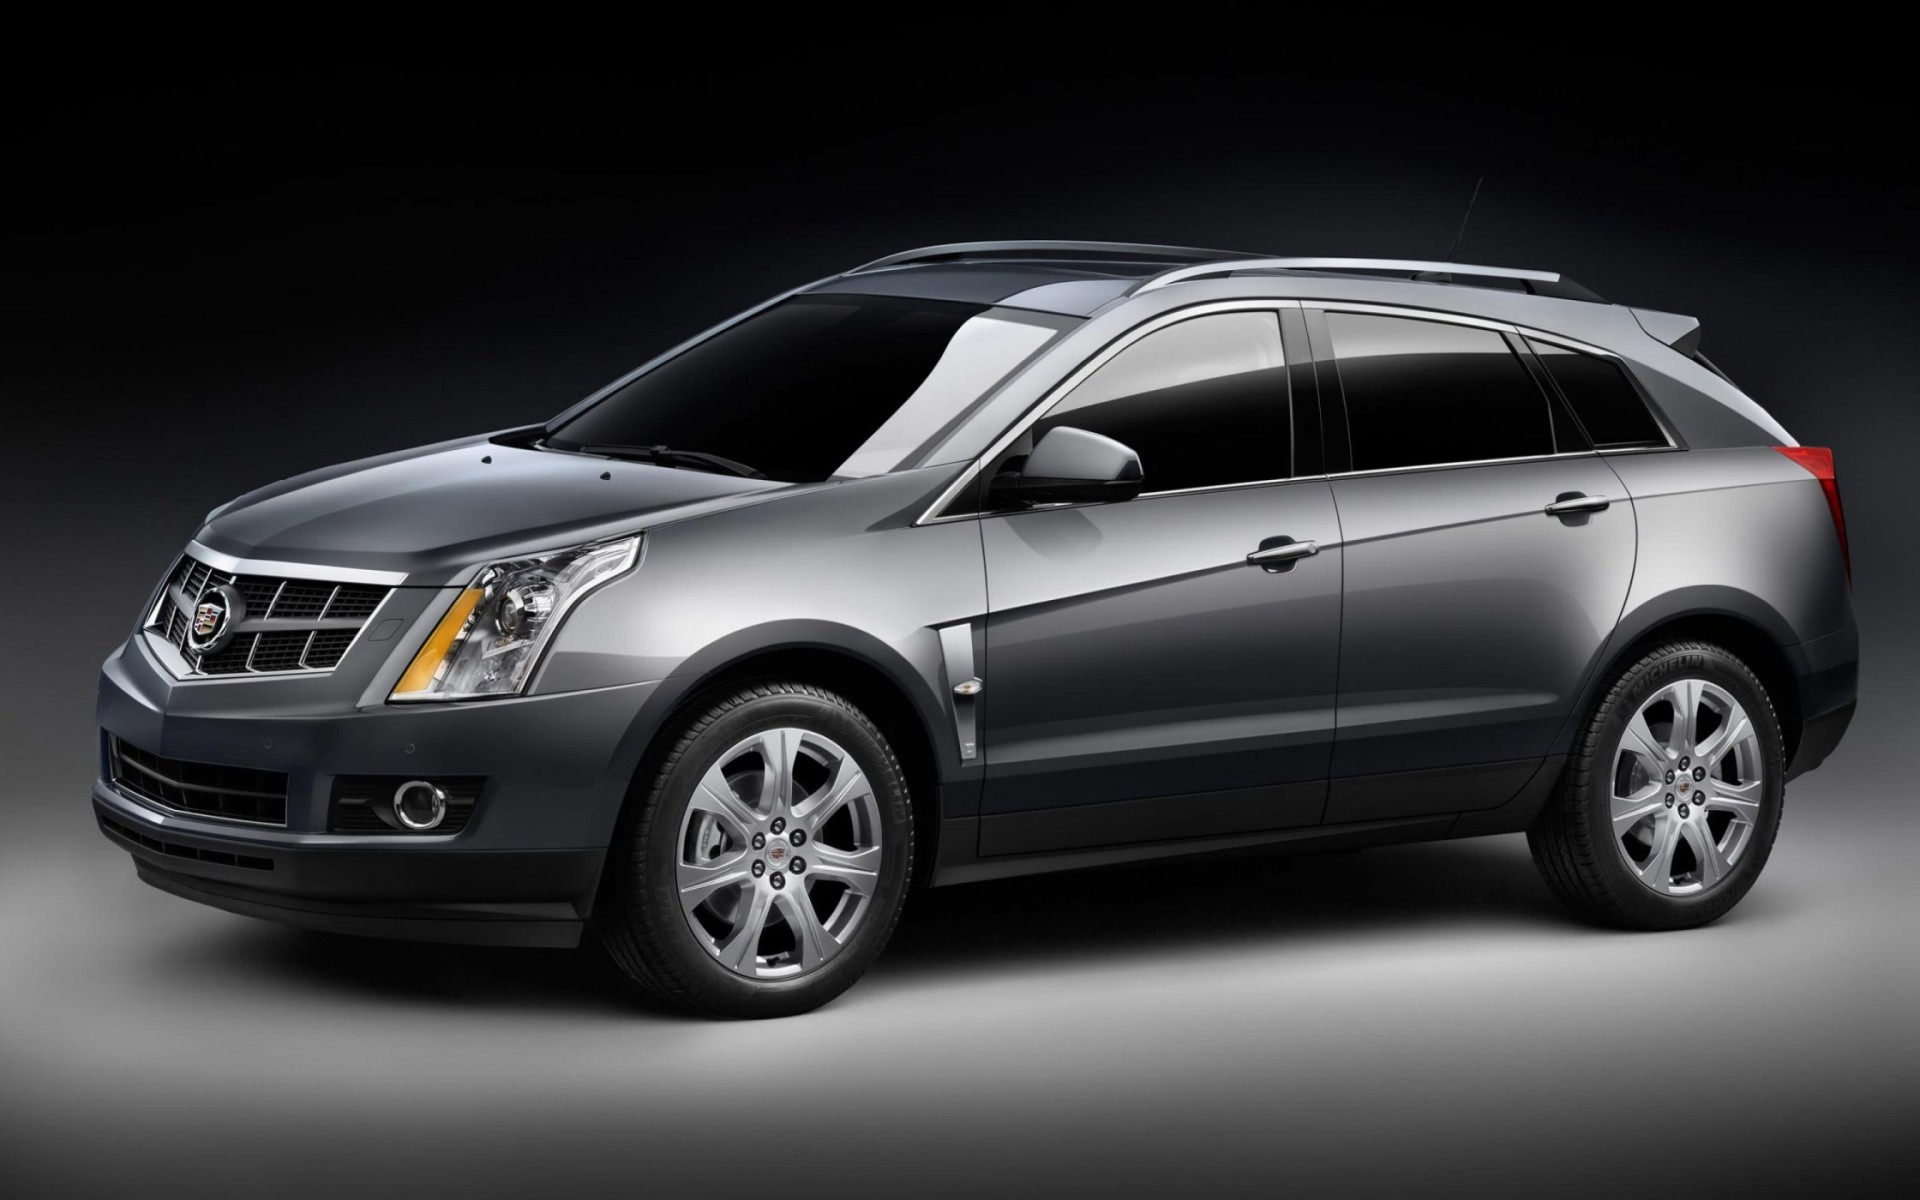 Black Cadillac SRX Crossover Suvcar Wallpaper